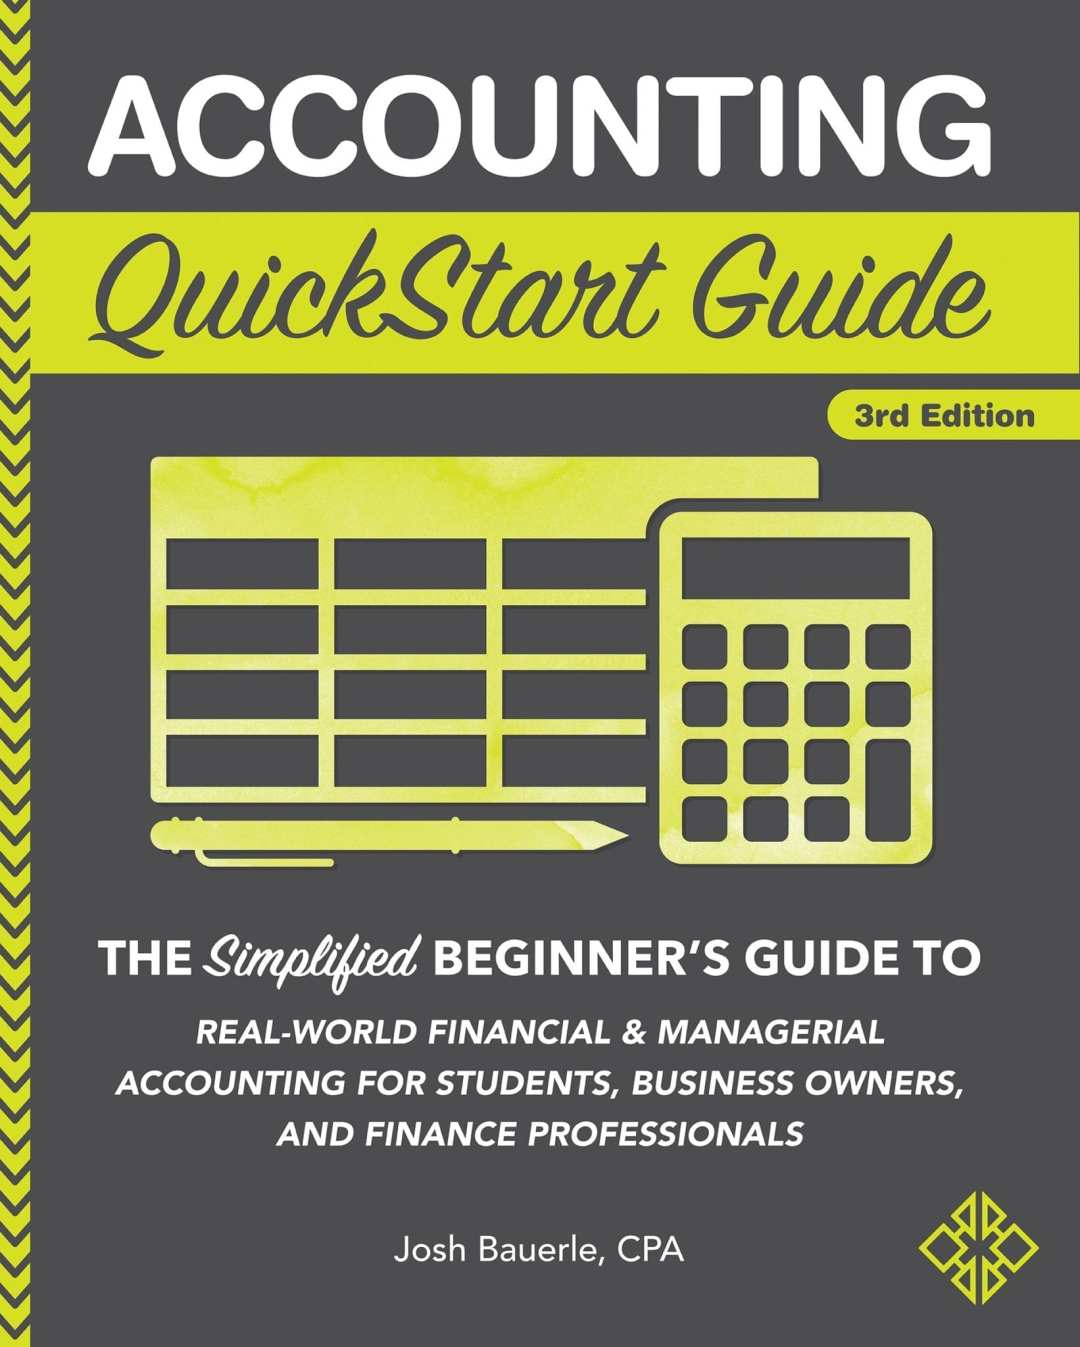 Download the cover of the Accounting QuickStart Guide here